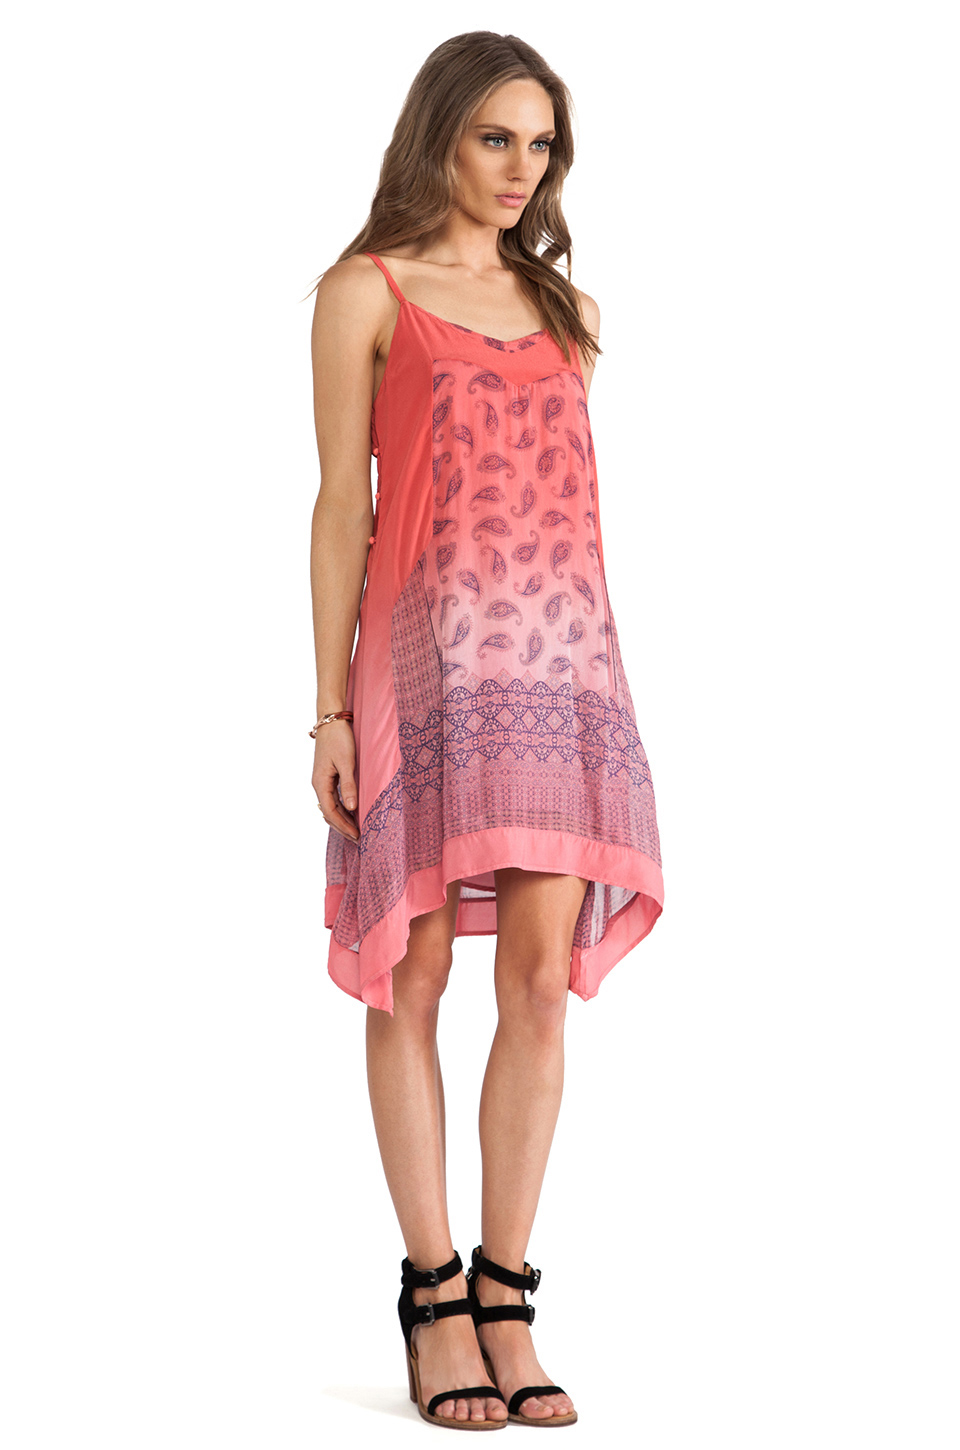 Gypsy 05 printed chiffon dress in bubble gum from revolveclothing.com